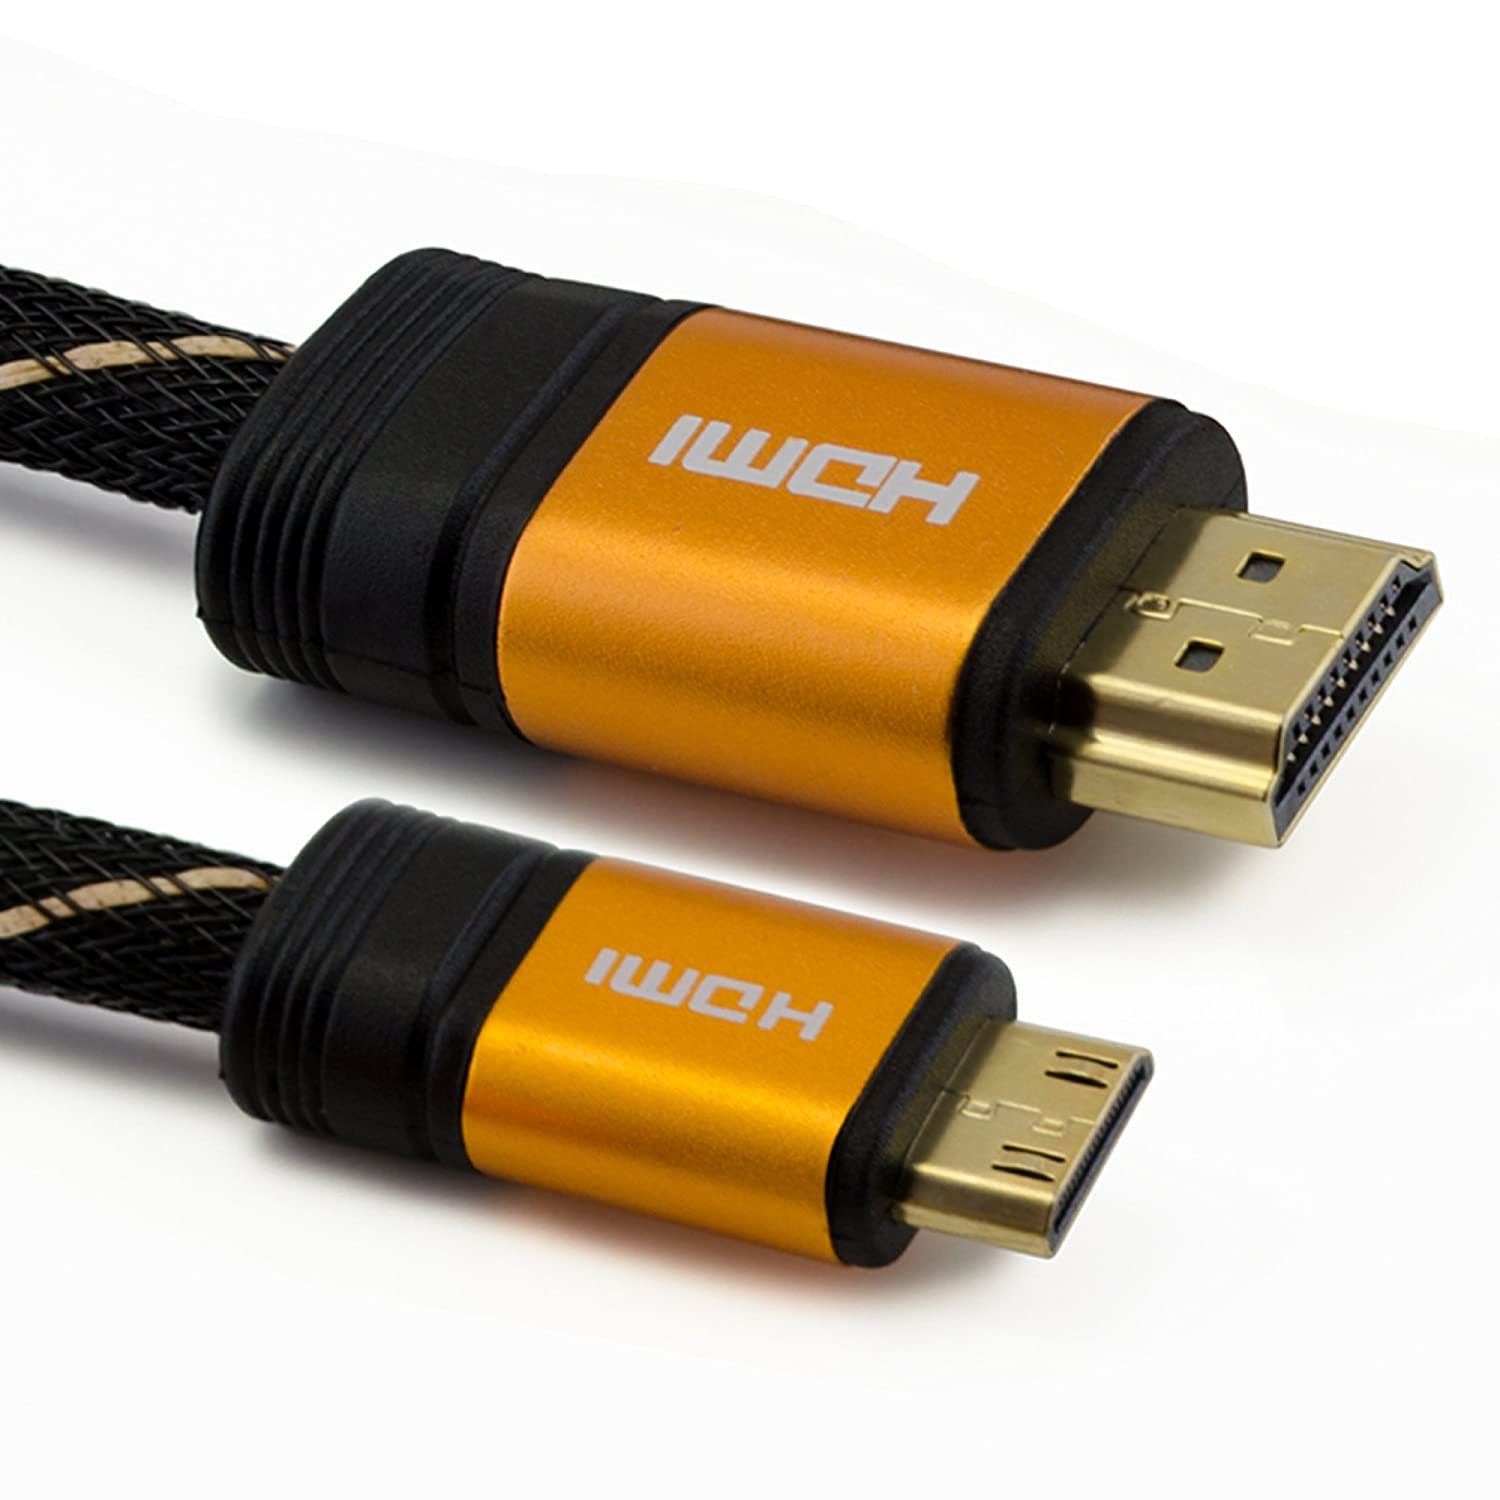 Tech'Import Cable Adaptador HDMI Tipo A a Tipo C - 1,5M - Full HD 1080p, 3D, Ethernet - Blindaje Triple - Conectores chapados en Oro - Trenzado de Nylon